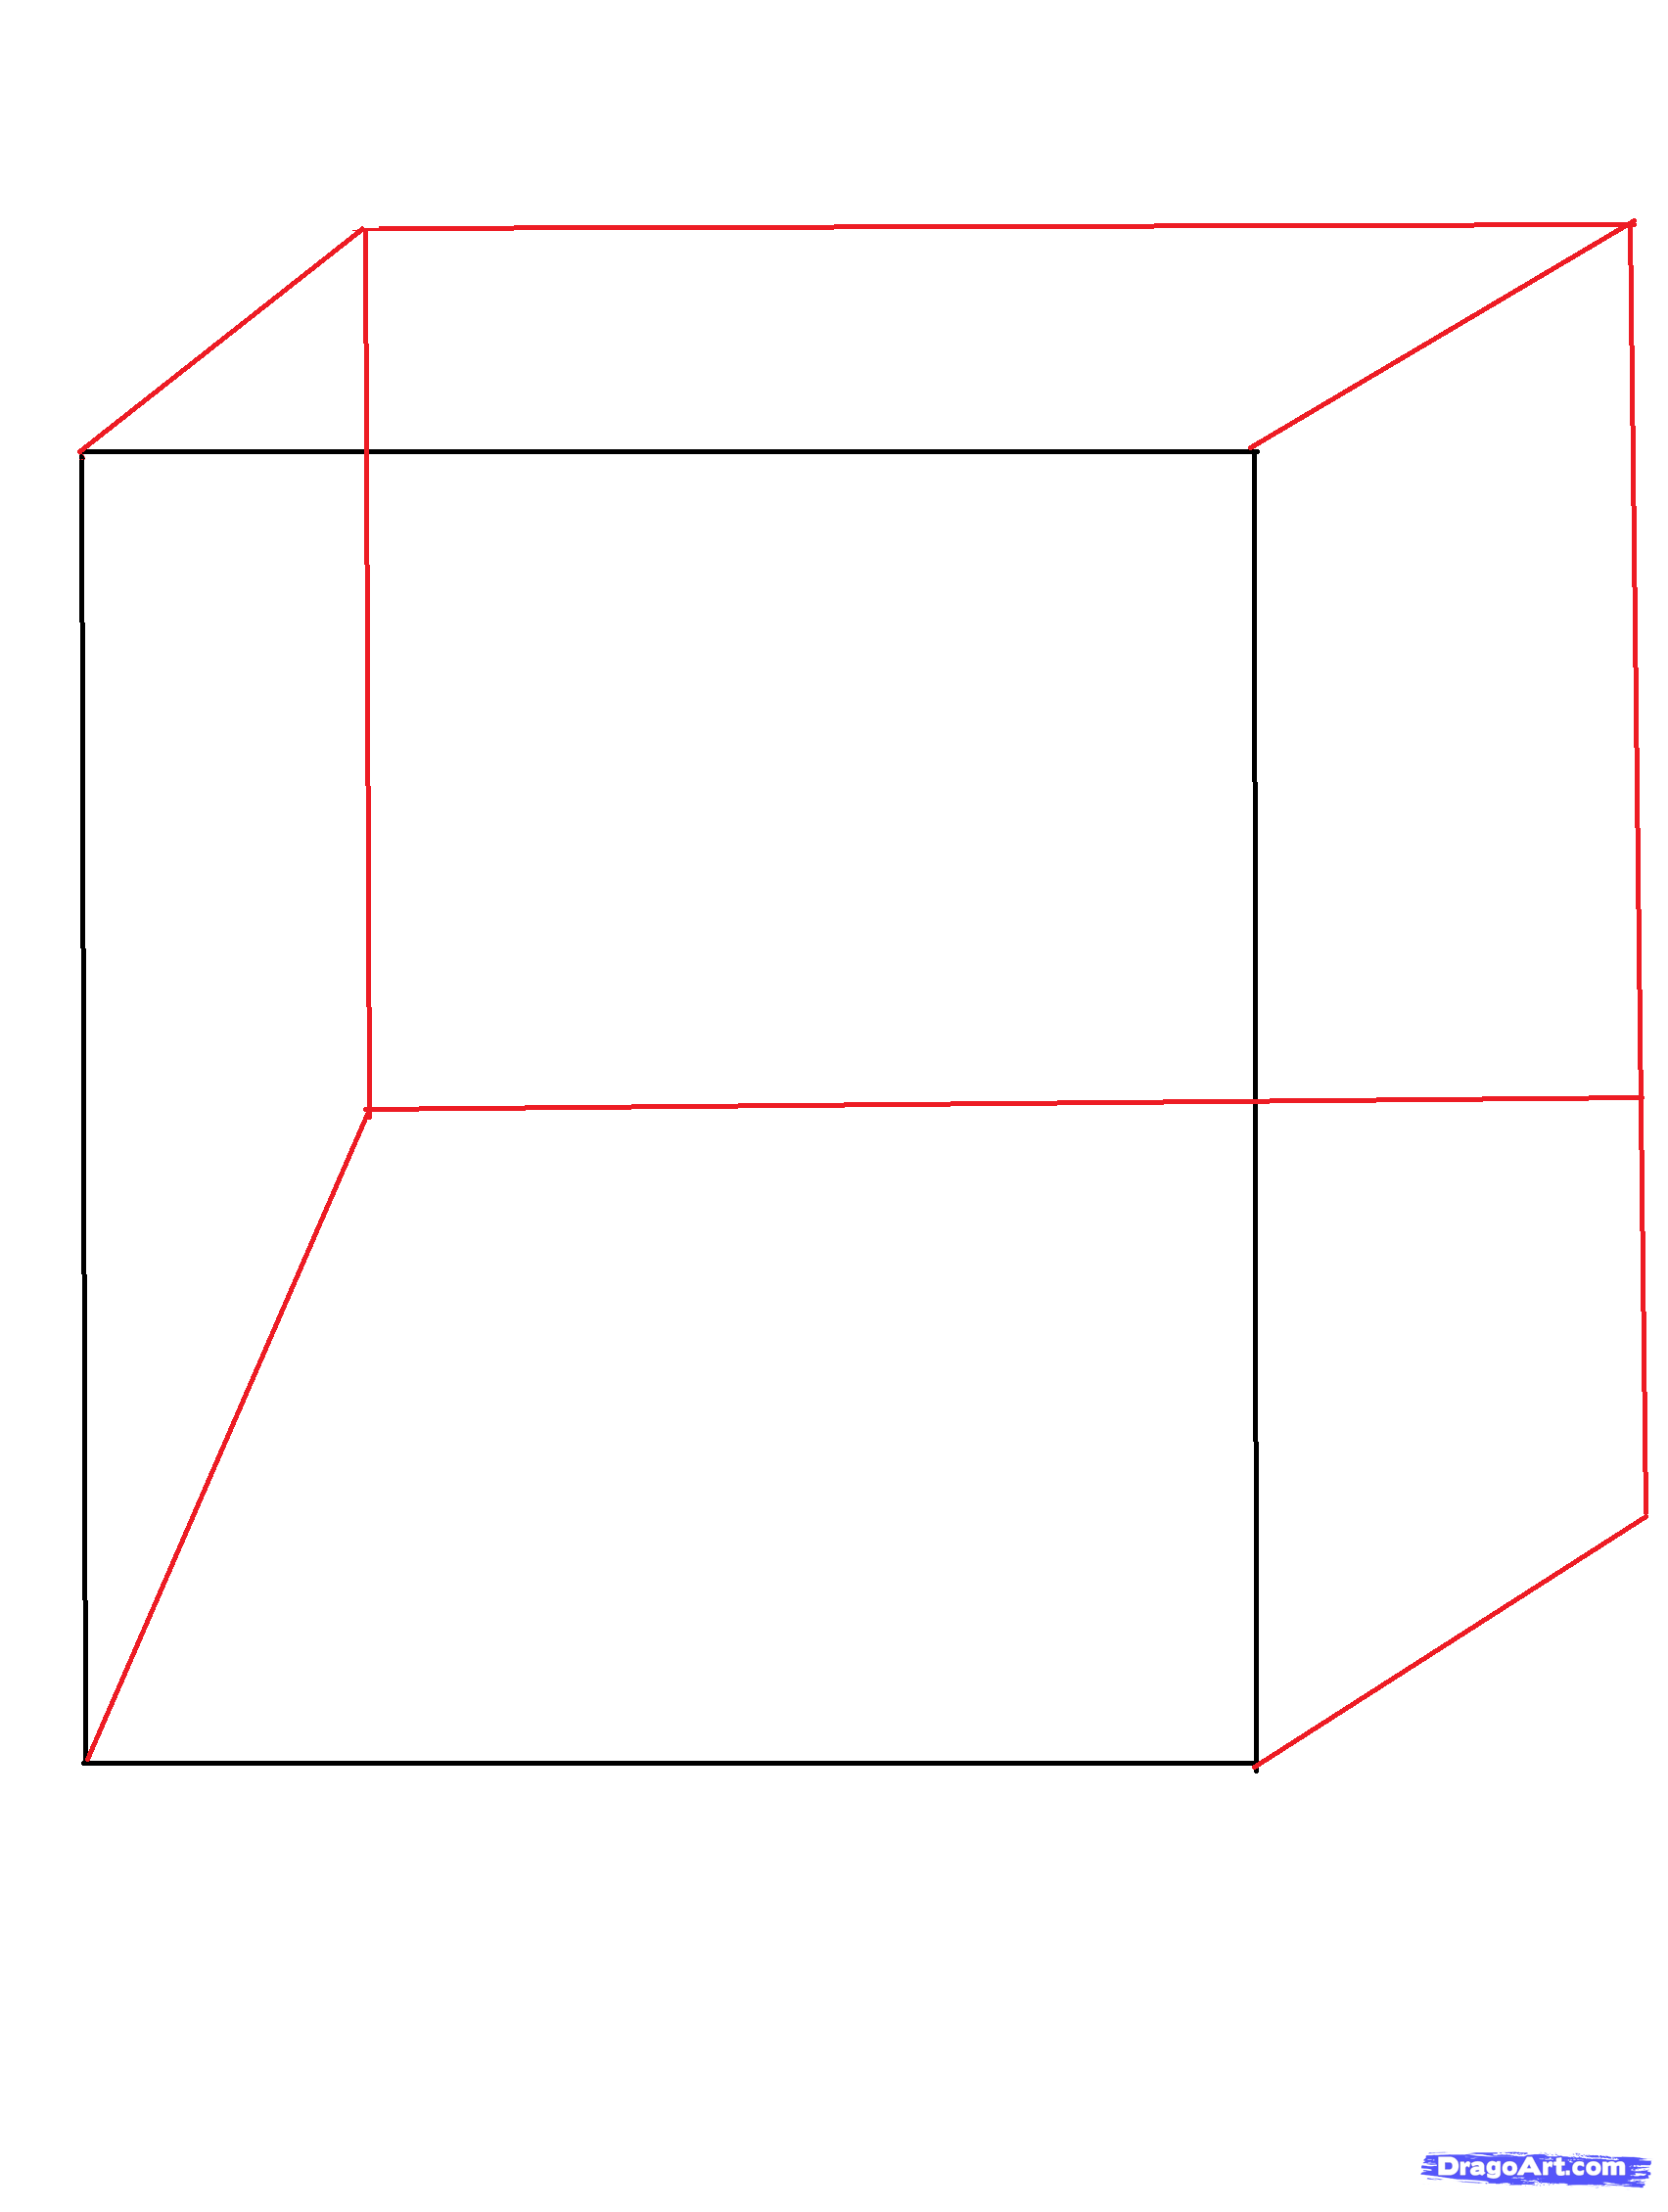 Drawn optical illusion step by step Illusion 3d a to illusion